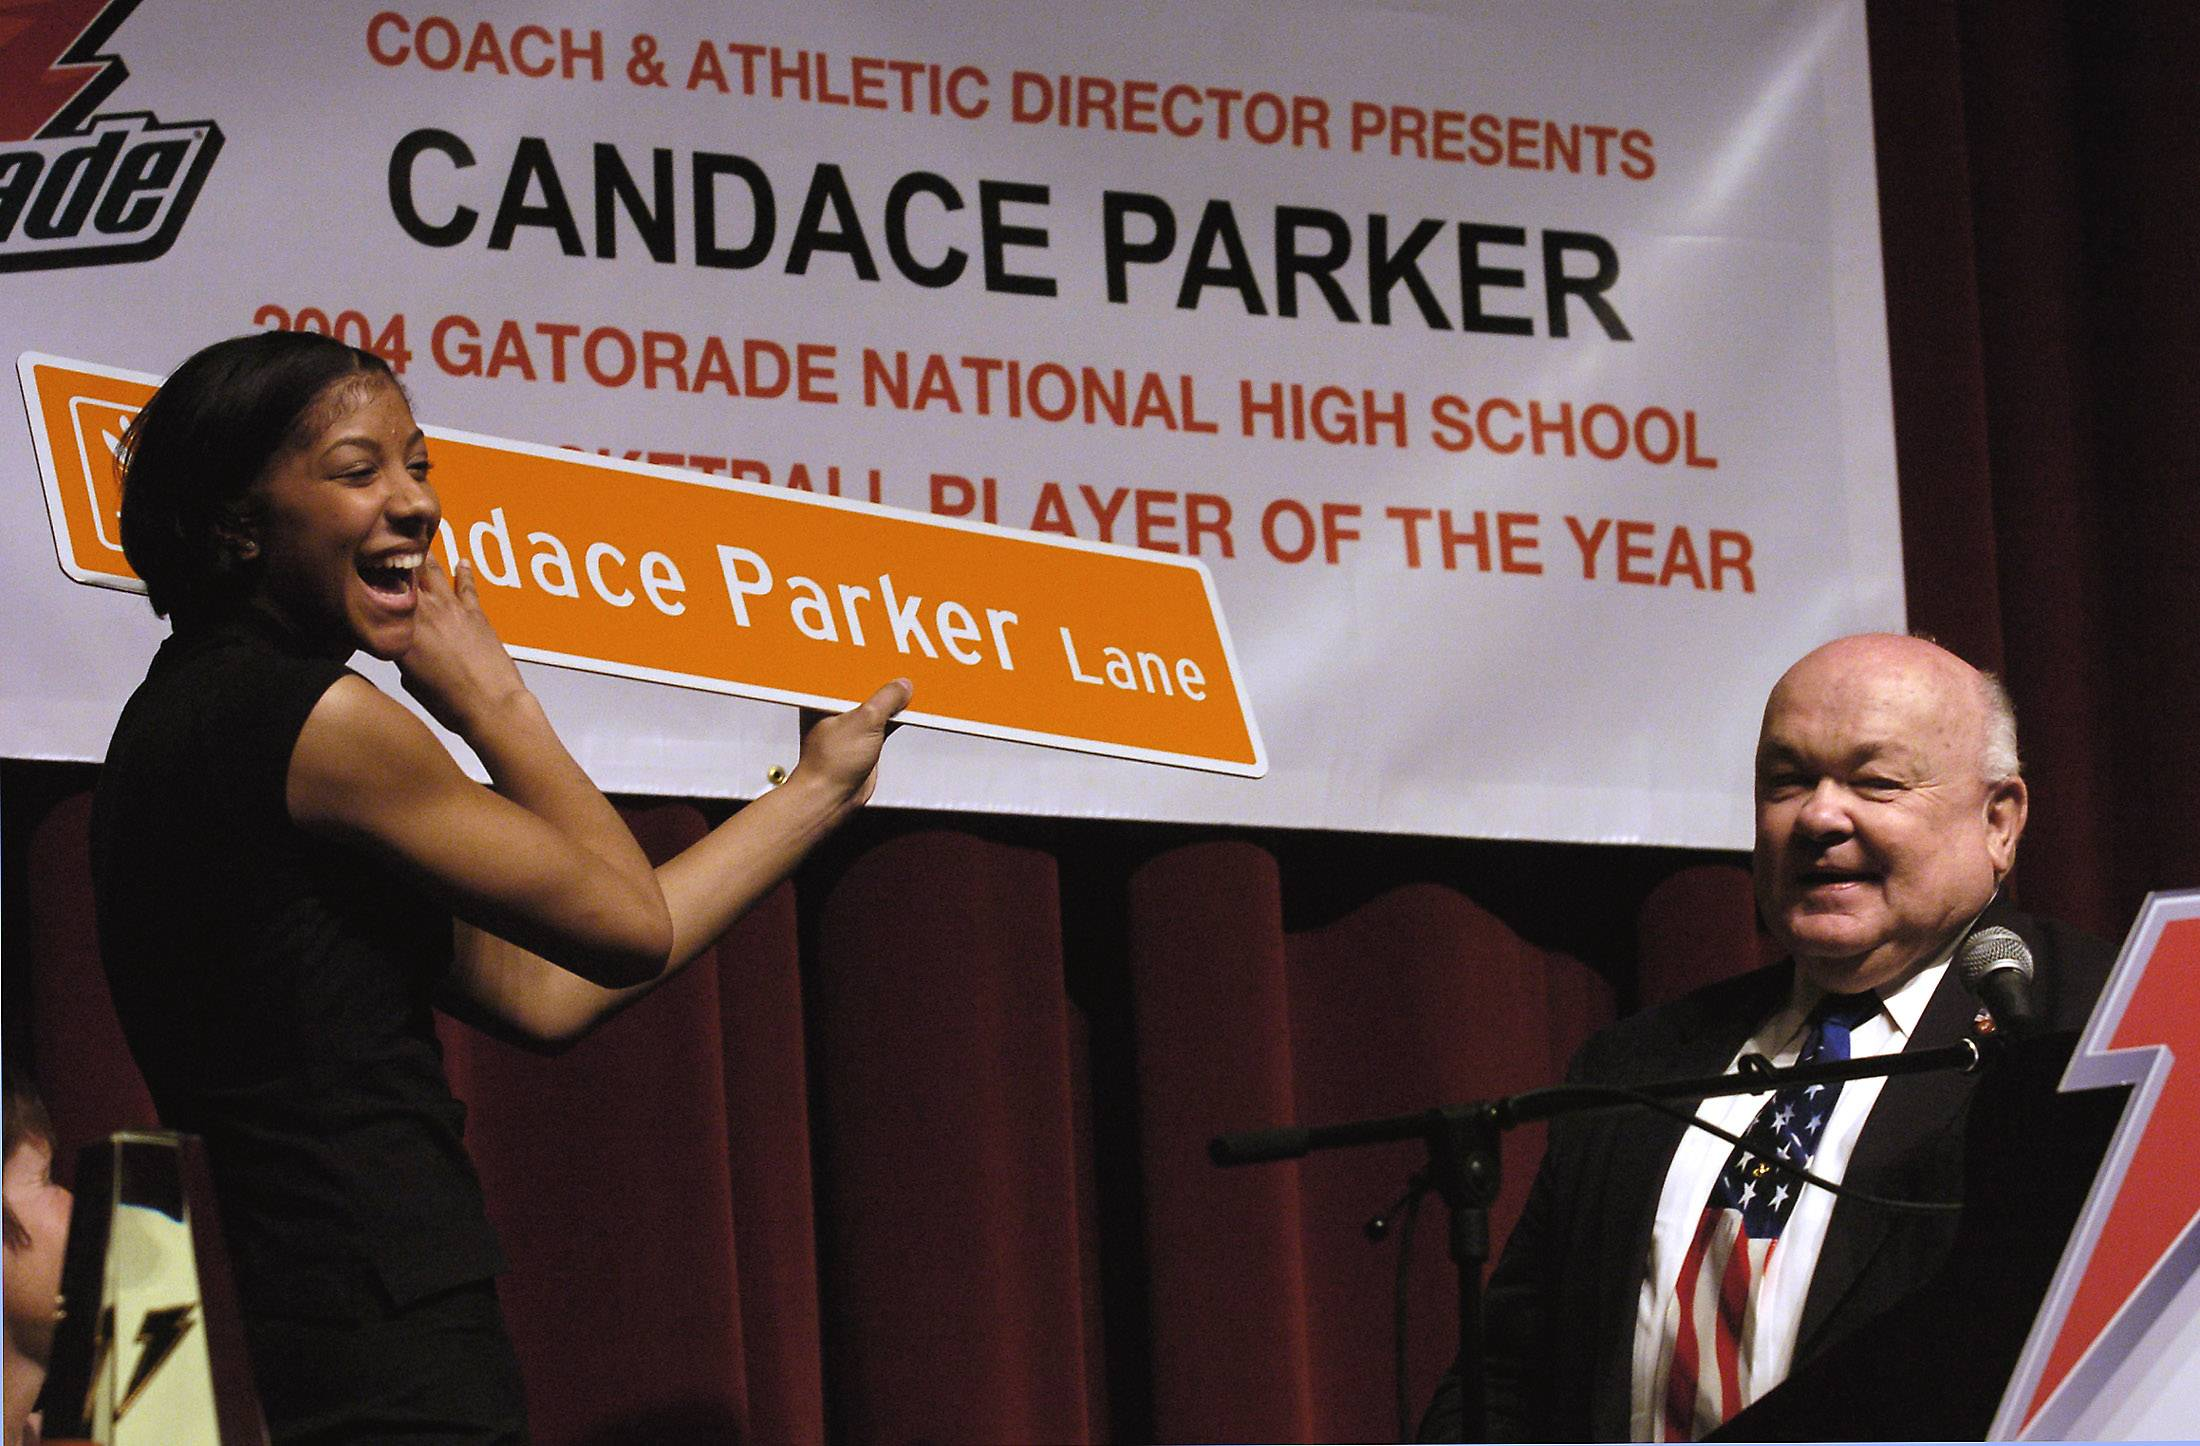 Pradel celebrates with Candace Parker, then a basketball star at Naperville Central High School, after she was named the 2004 Gatorade National High School Girls Basketball Player of the Year.